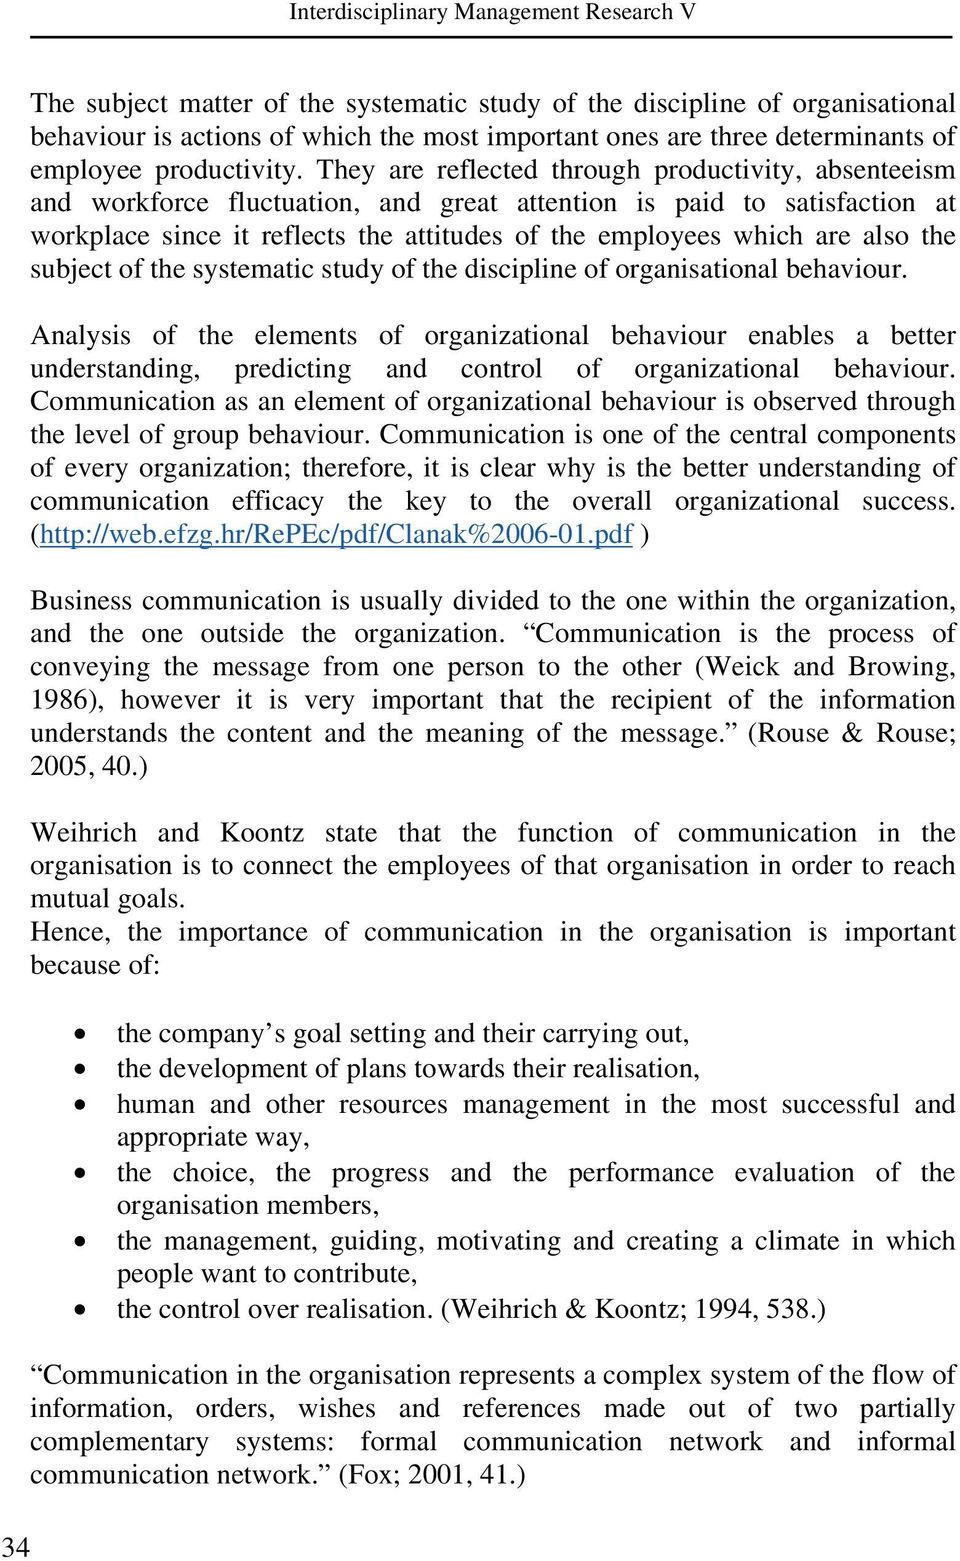 ORGANIZATIONAL COMMUNICATION AS AN IMPORTANT FACTOR OF